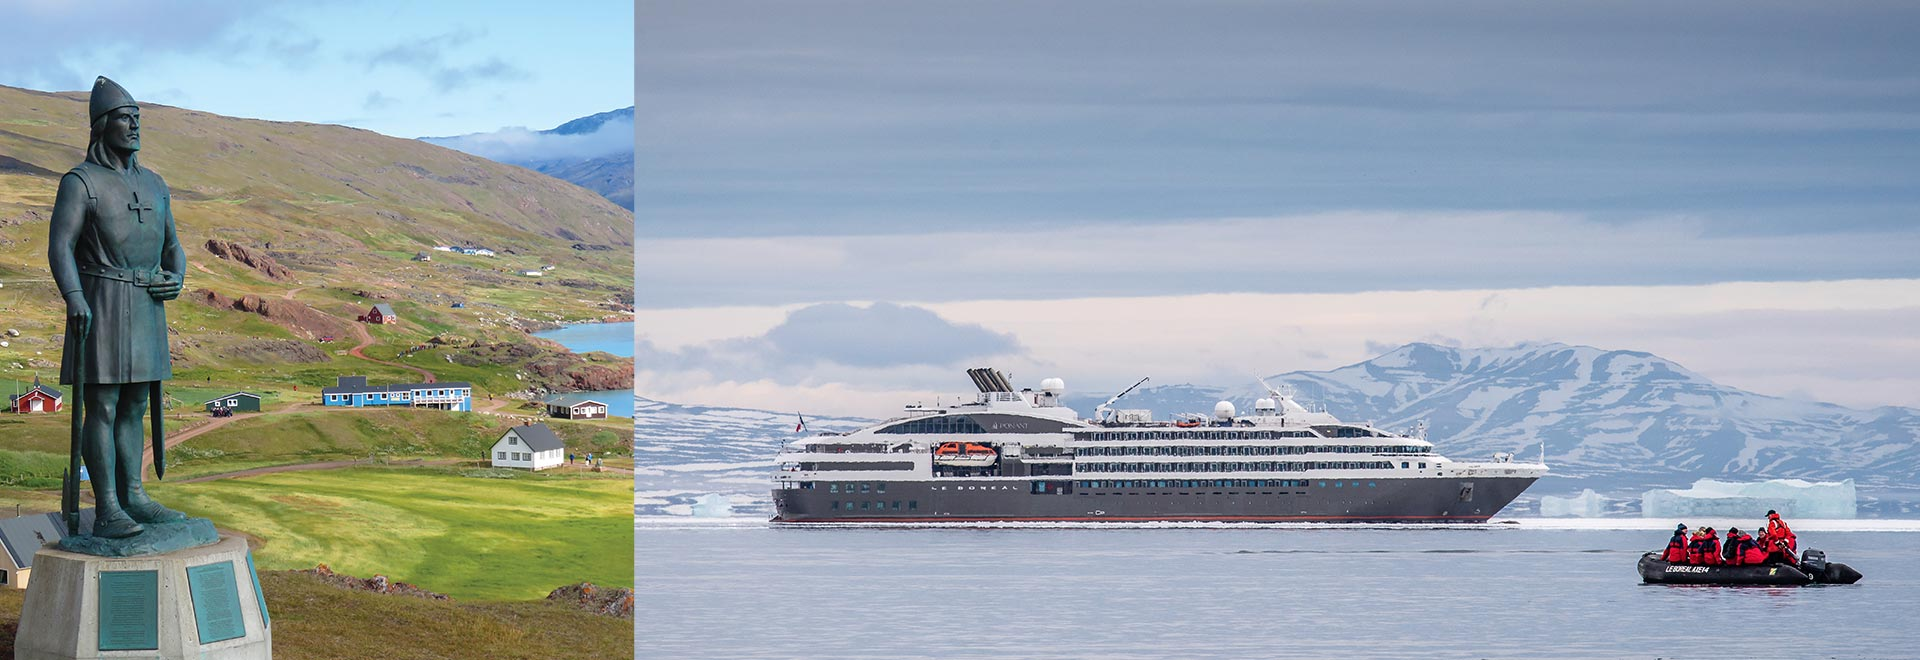 Arctic Iceland Greenland Cruise MH